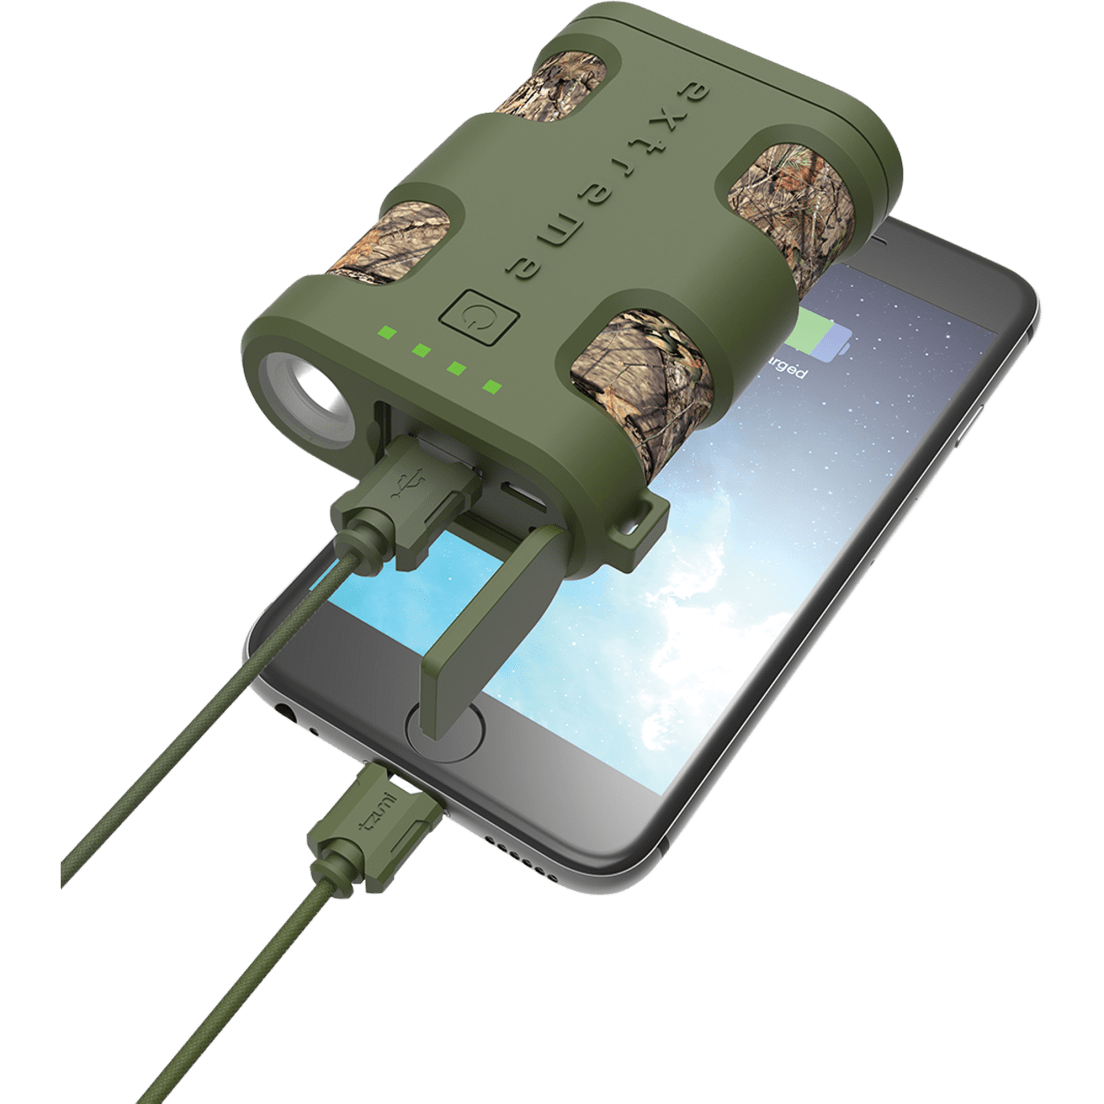 Tzumi Pocketjuice Mossy Oak Extreme 6000mah Portable Charger